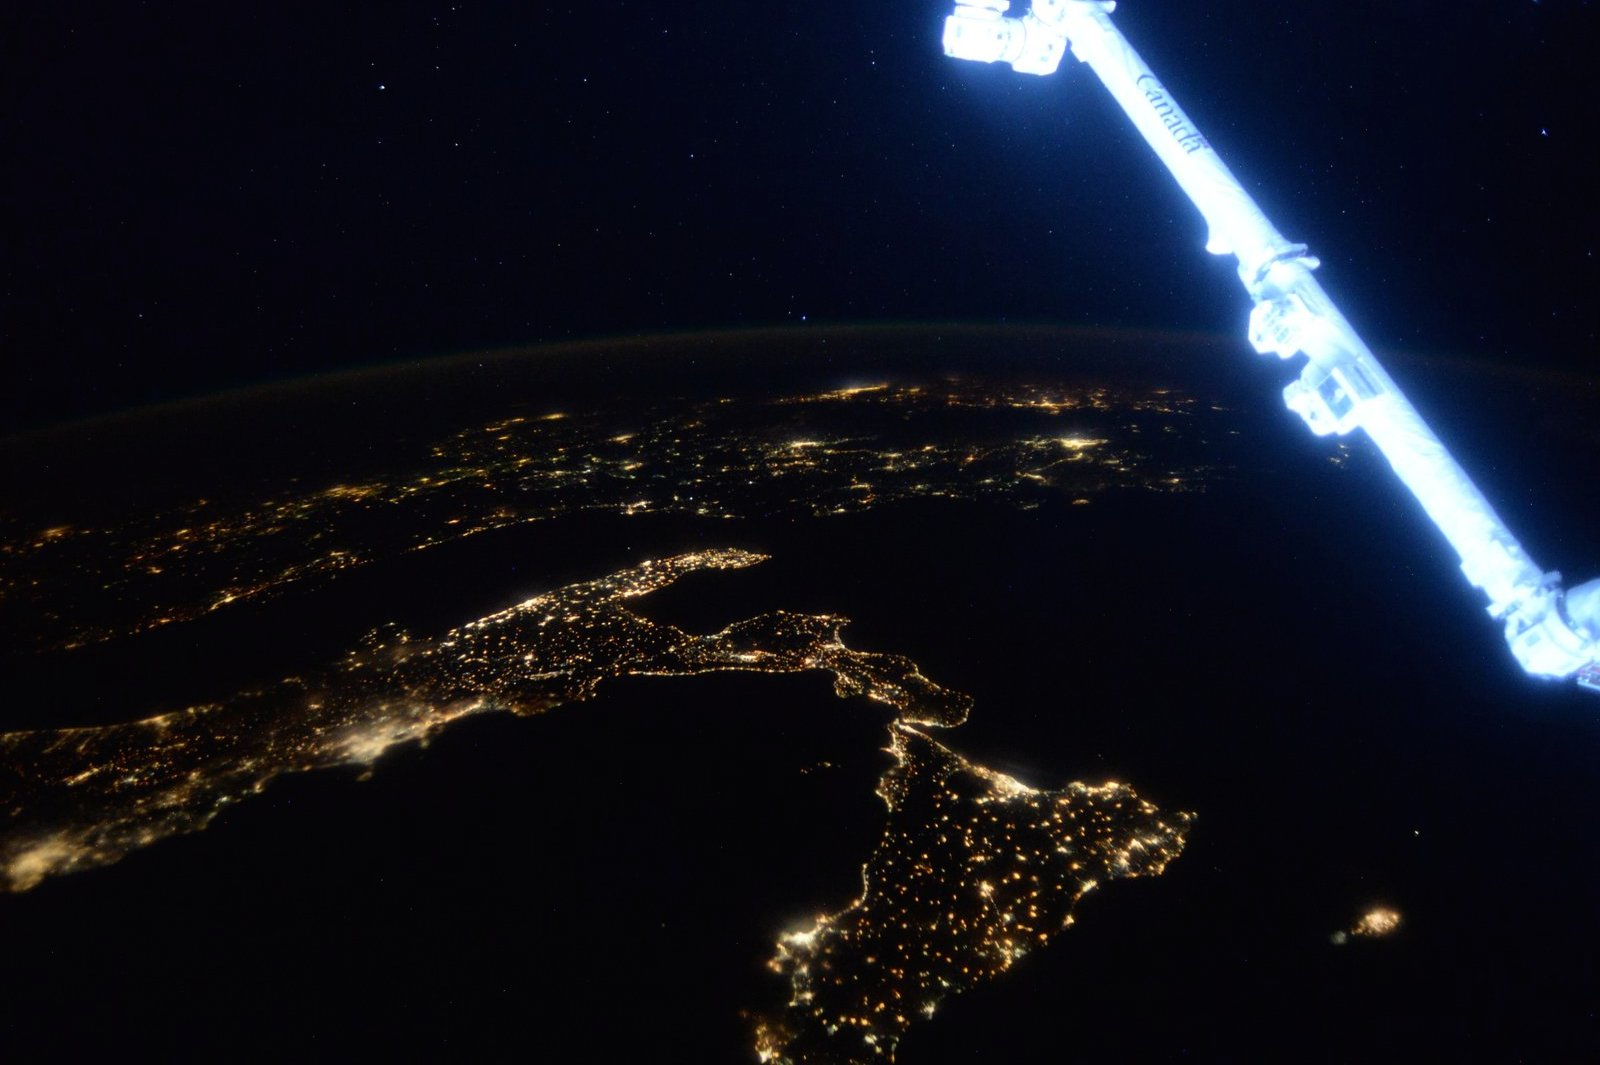 Day 328. Twilight and #Italy to boot! #BuonaNotte #GoodNight from @space_station! #YearInSpace https://t.co/EATcdg5rSz